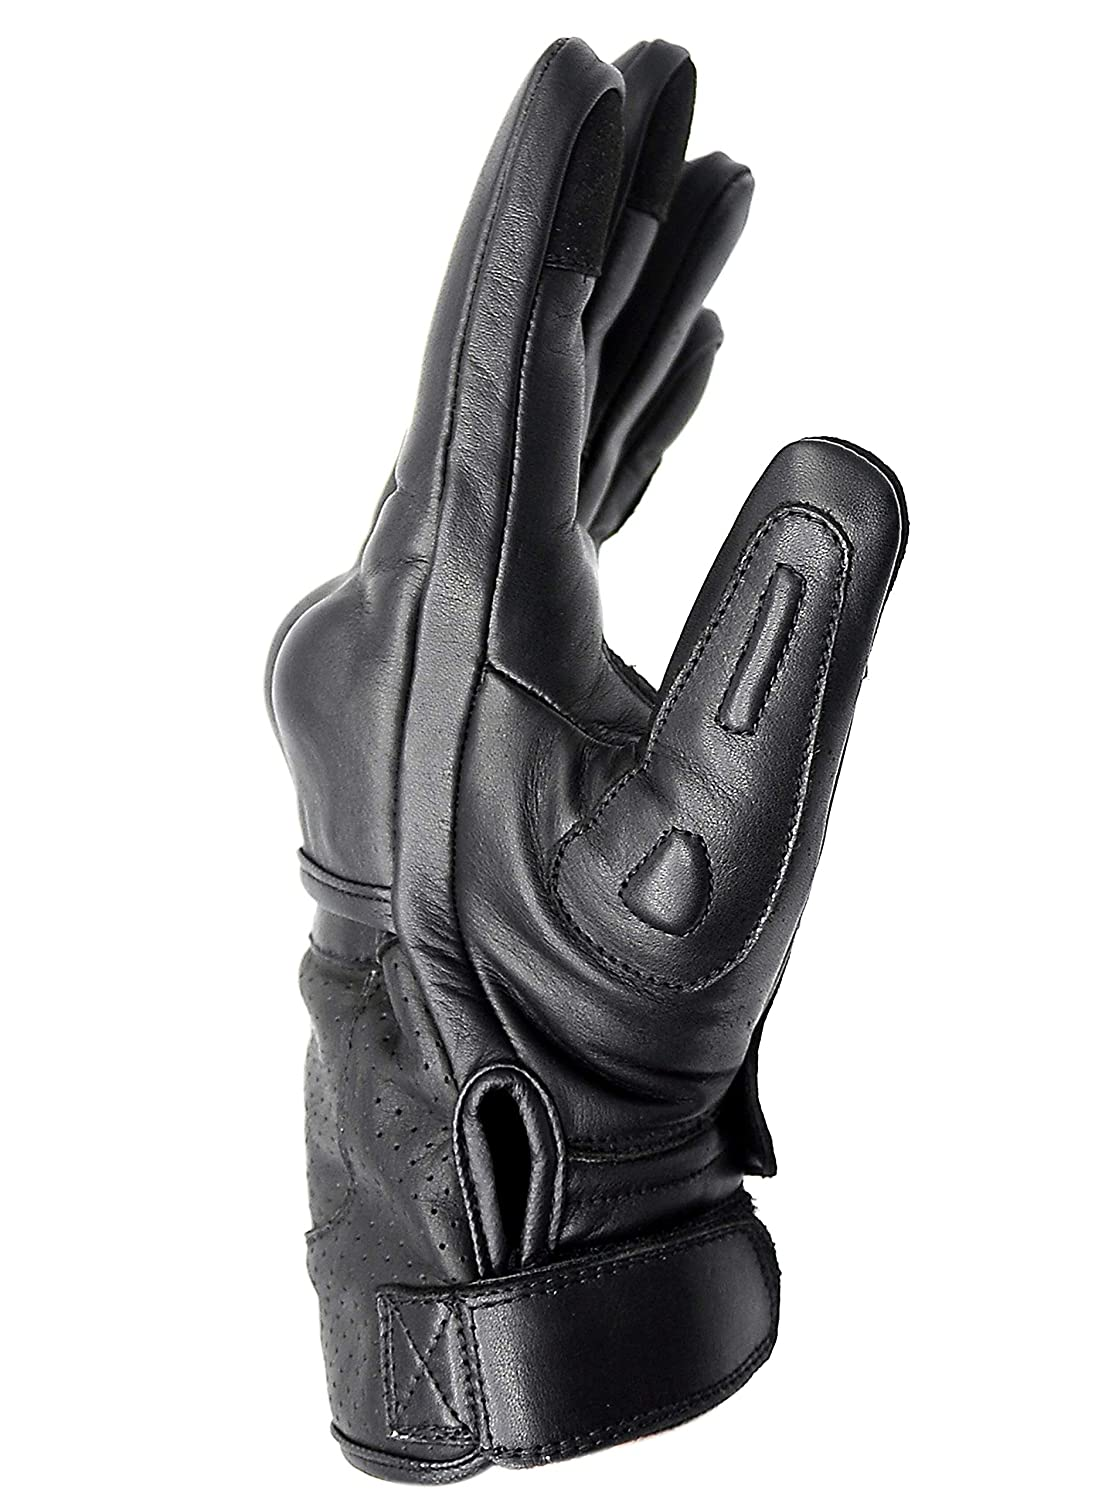 XX Large Hand Fellow Premium Leather Motorbike Motorcycle Gloves Touch Screen Gloves with Knuckle Protection Racing gloves Riding Gloves